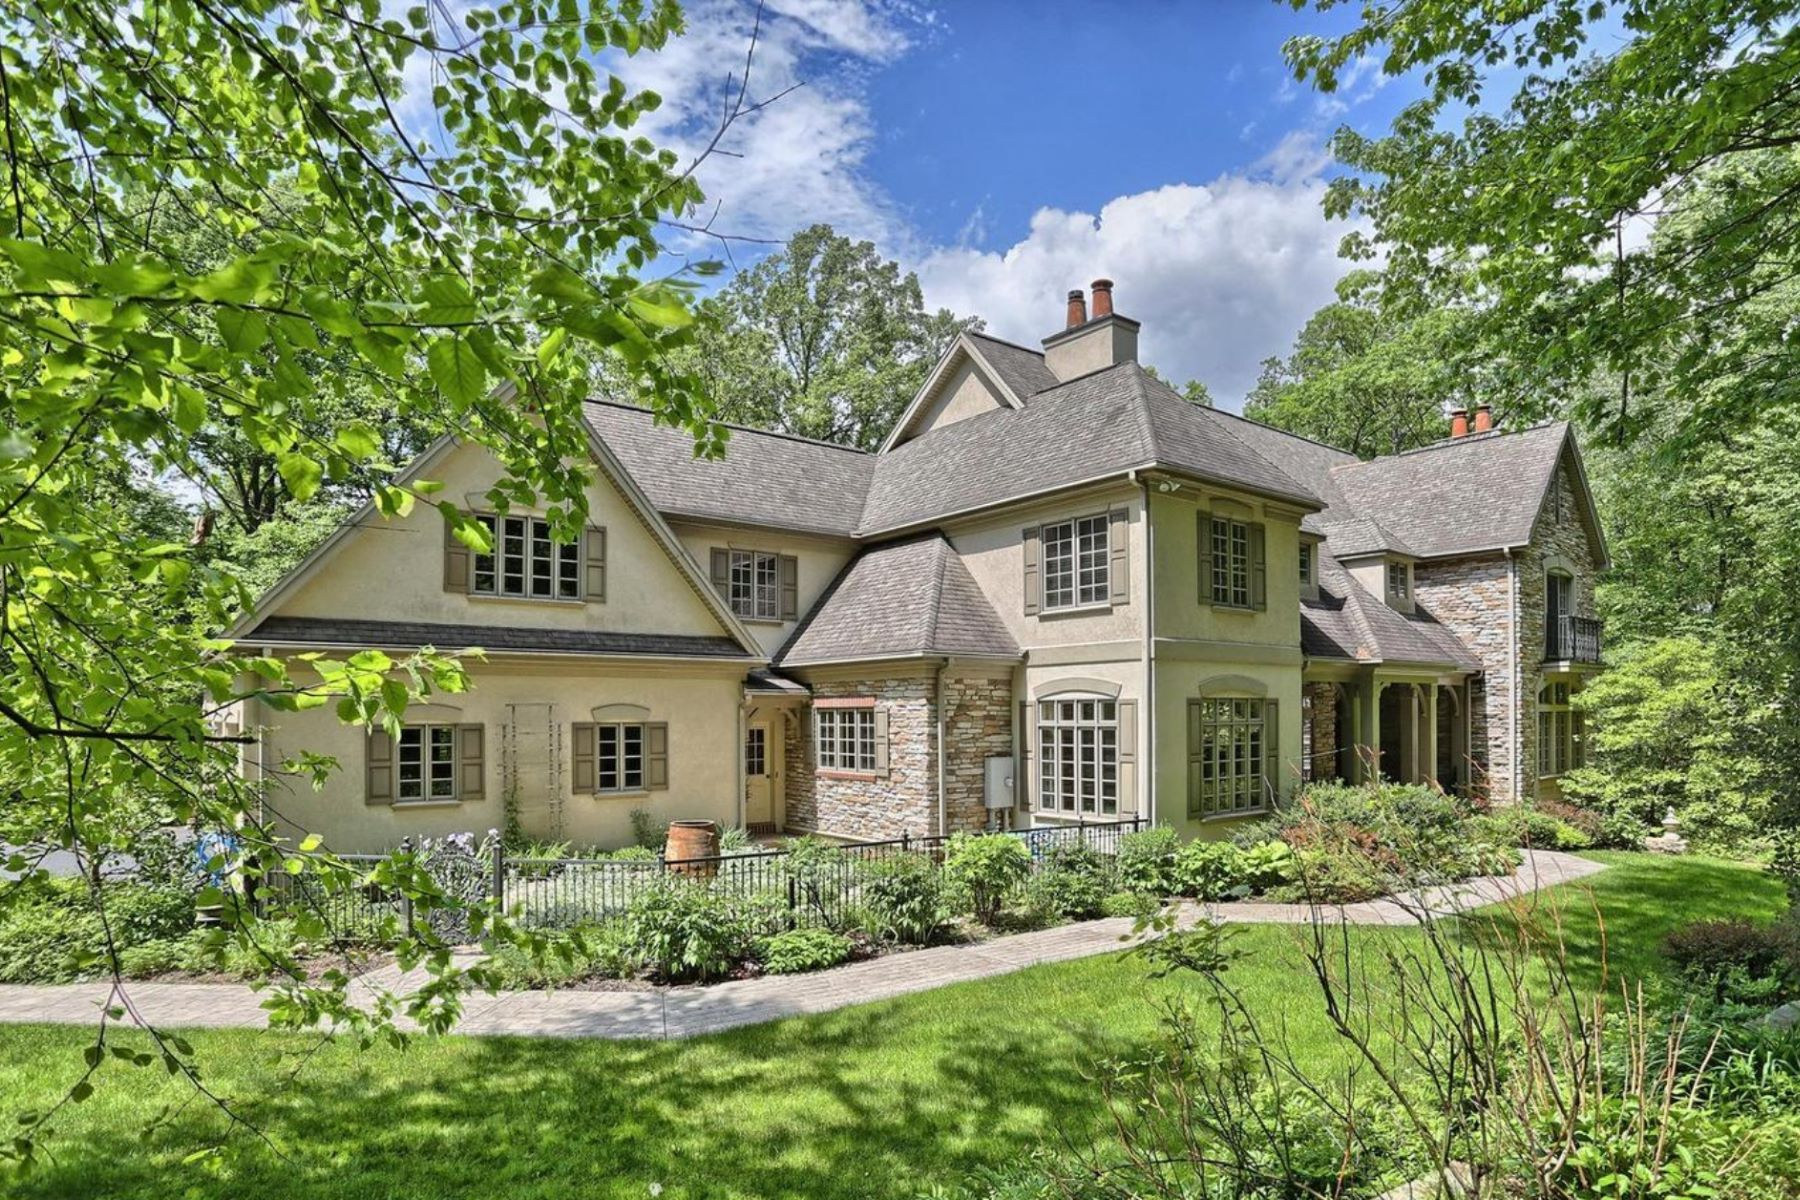 Single Family Homes for Sale at 231 Valley Road Mount Gretna, Pennsylvania 17042 United States